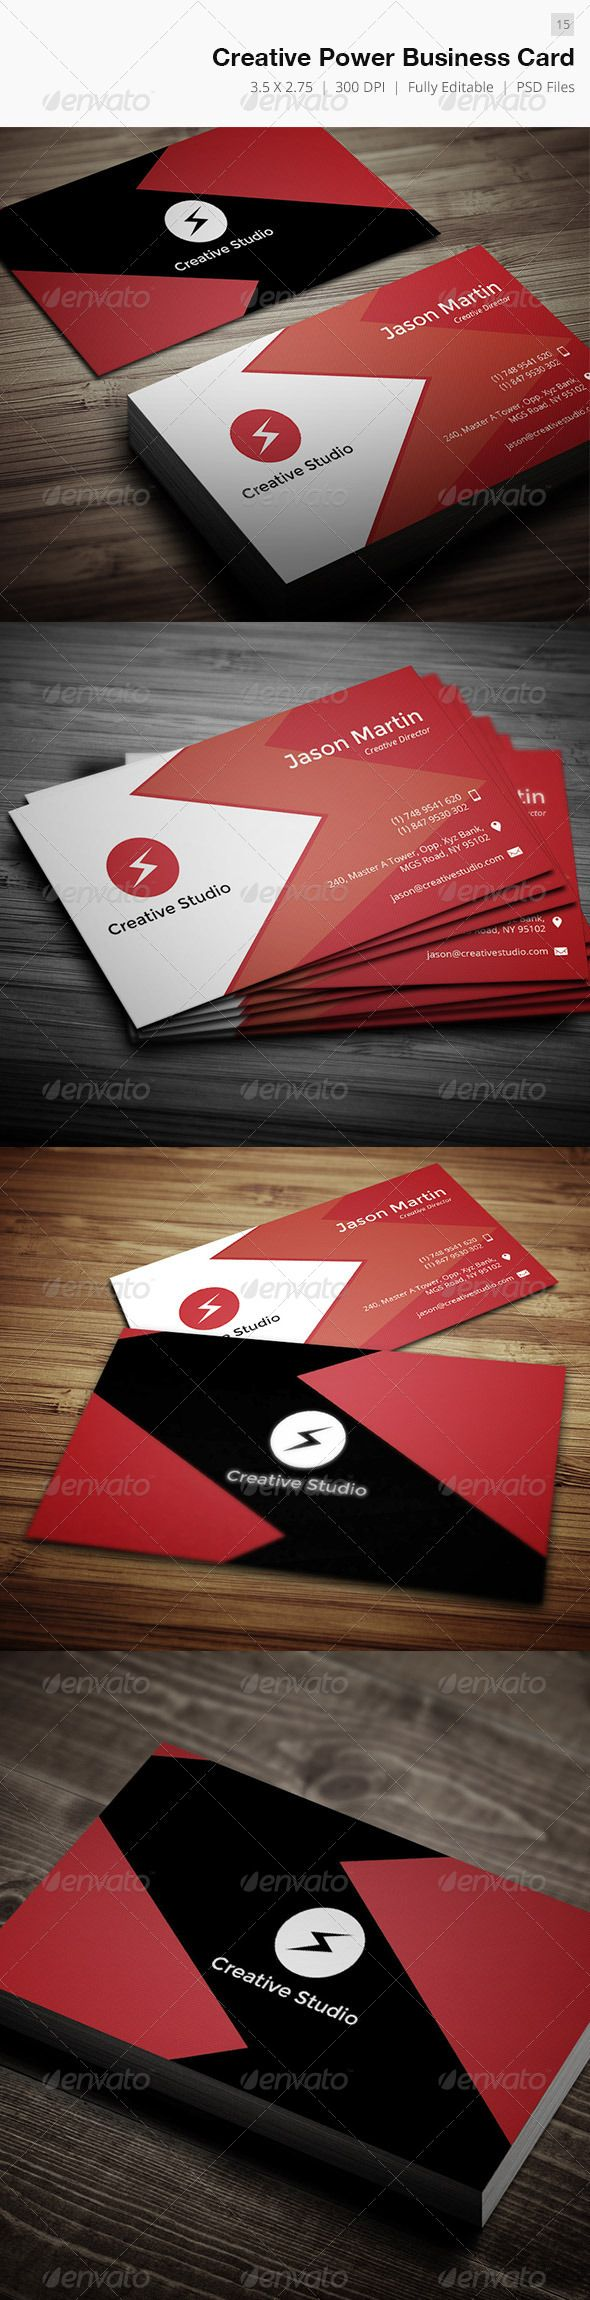 96 best print templates images on pinterest business cards 96 best print templates images on pinterest business cards flyers and font logo magicingreecefo Choice Image